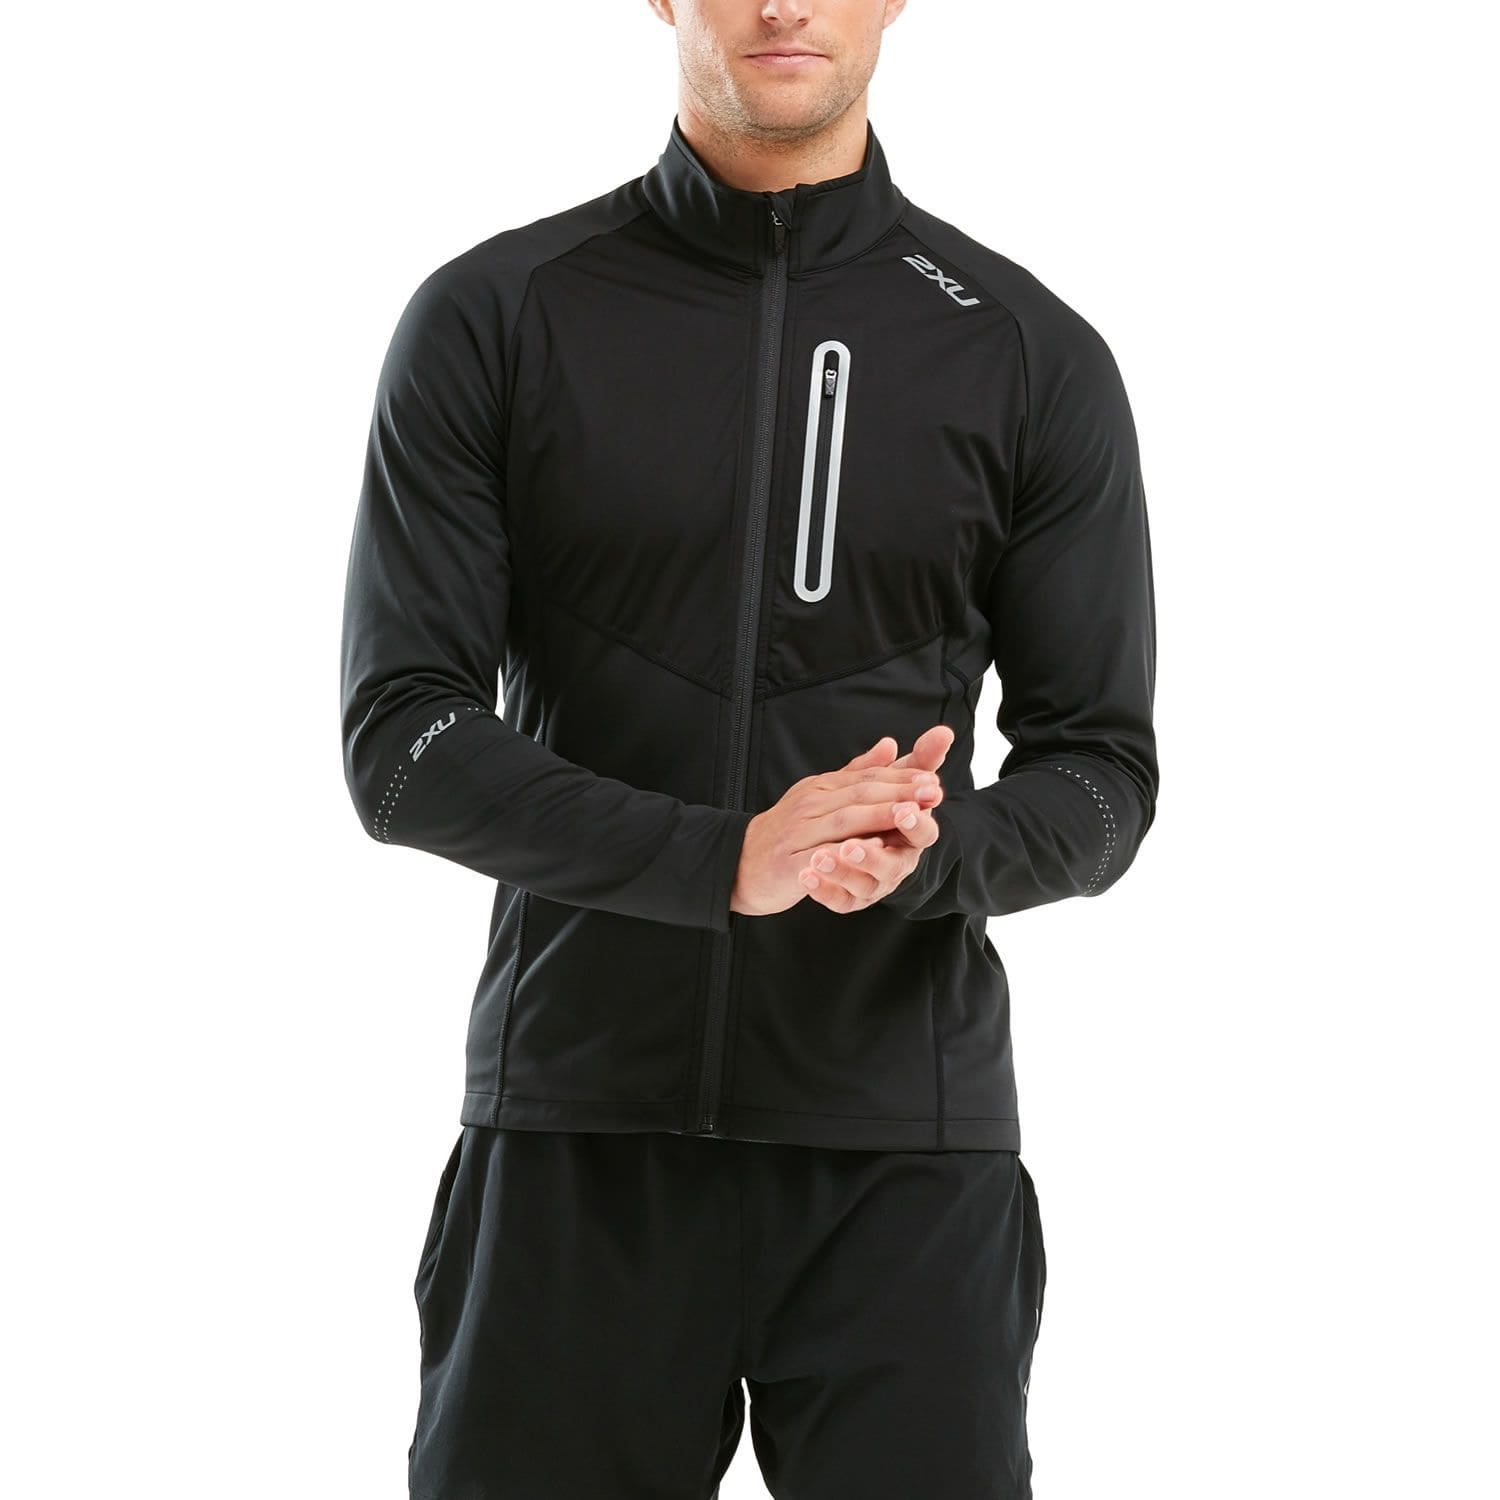 Pursuit Thermal Hybrid Jacke Herren - 2xu - schwarz